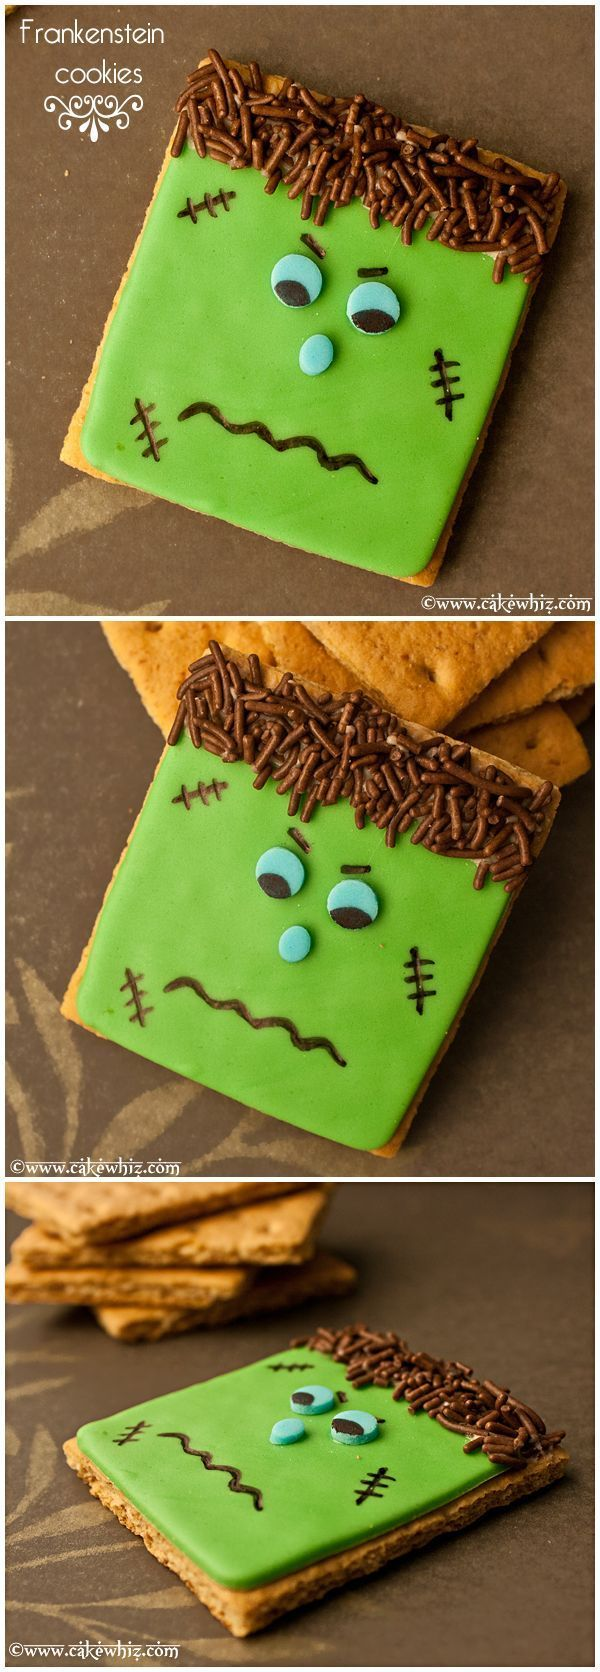 17 best images about halloween bake s for no kid hungry on bring frankenstein cookies to your halloween bake for no kid hungry bake